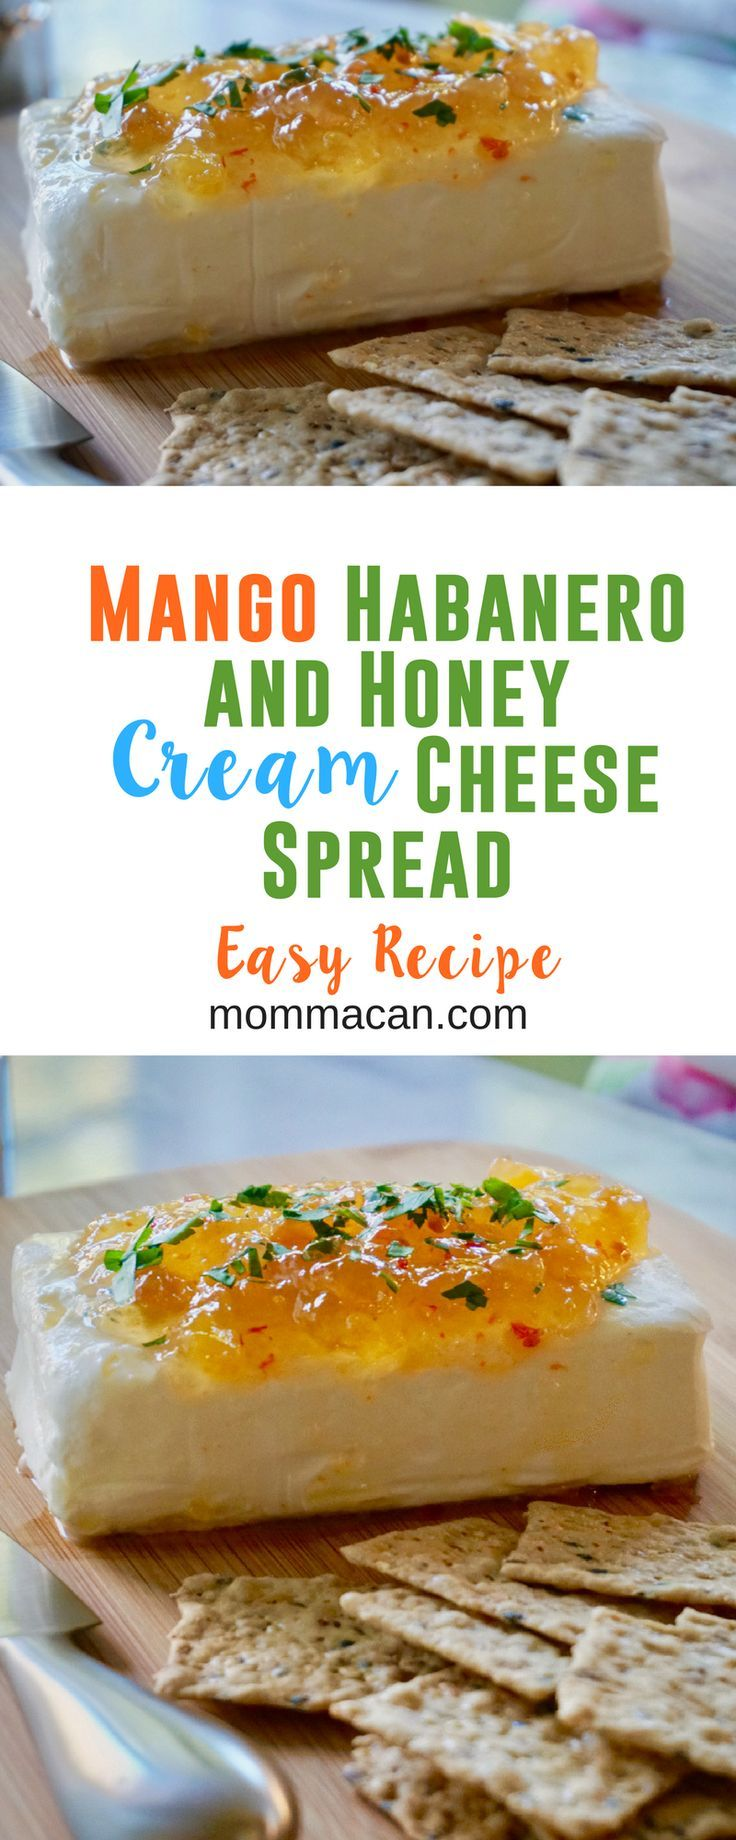 Mango Habanero Pepper Jelly, Honey, and Cream Cheese Spread, the perfect appetizer for those who like a little spice in their life. #creamcheese #appetizer #easyrecipe